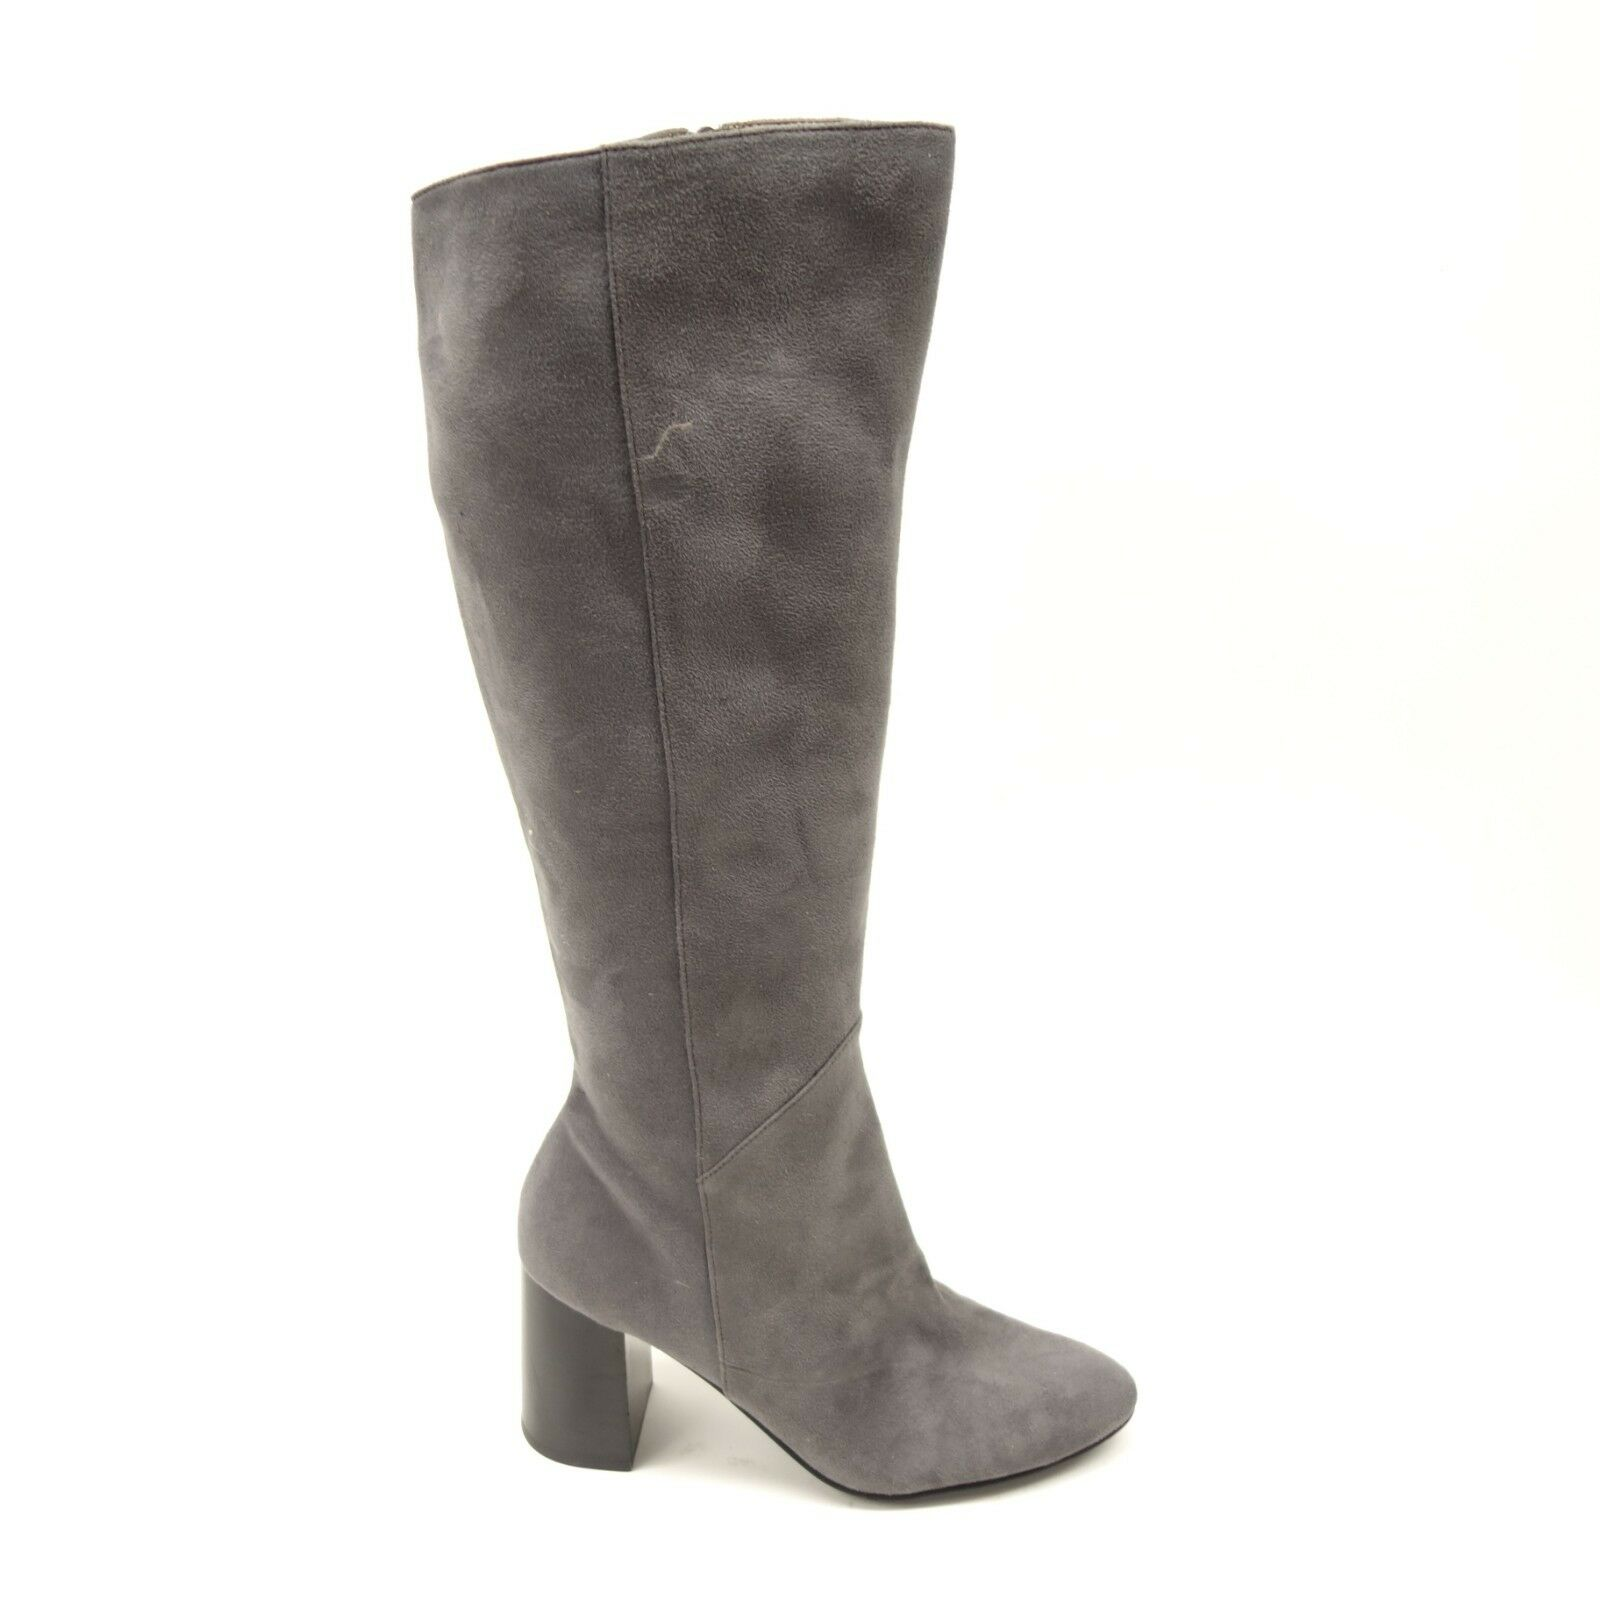 New Womens 14th & Union Helenah Suede Boot Knee High Festival Boots SZ 8.5 M